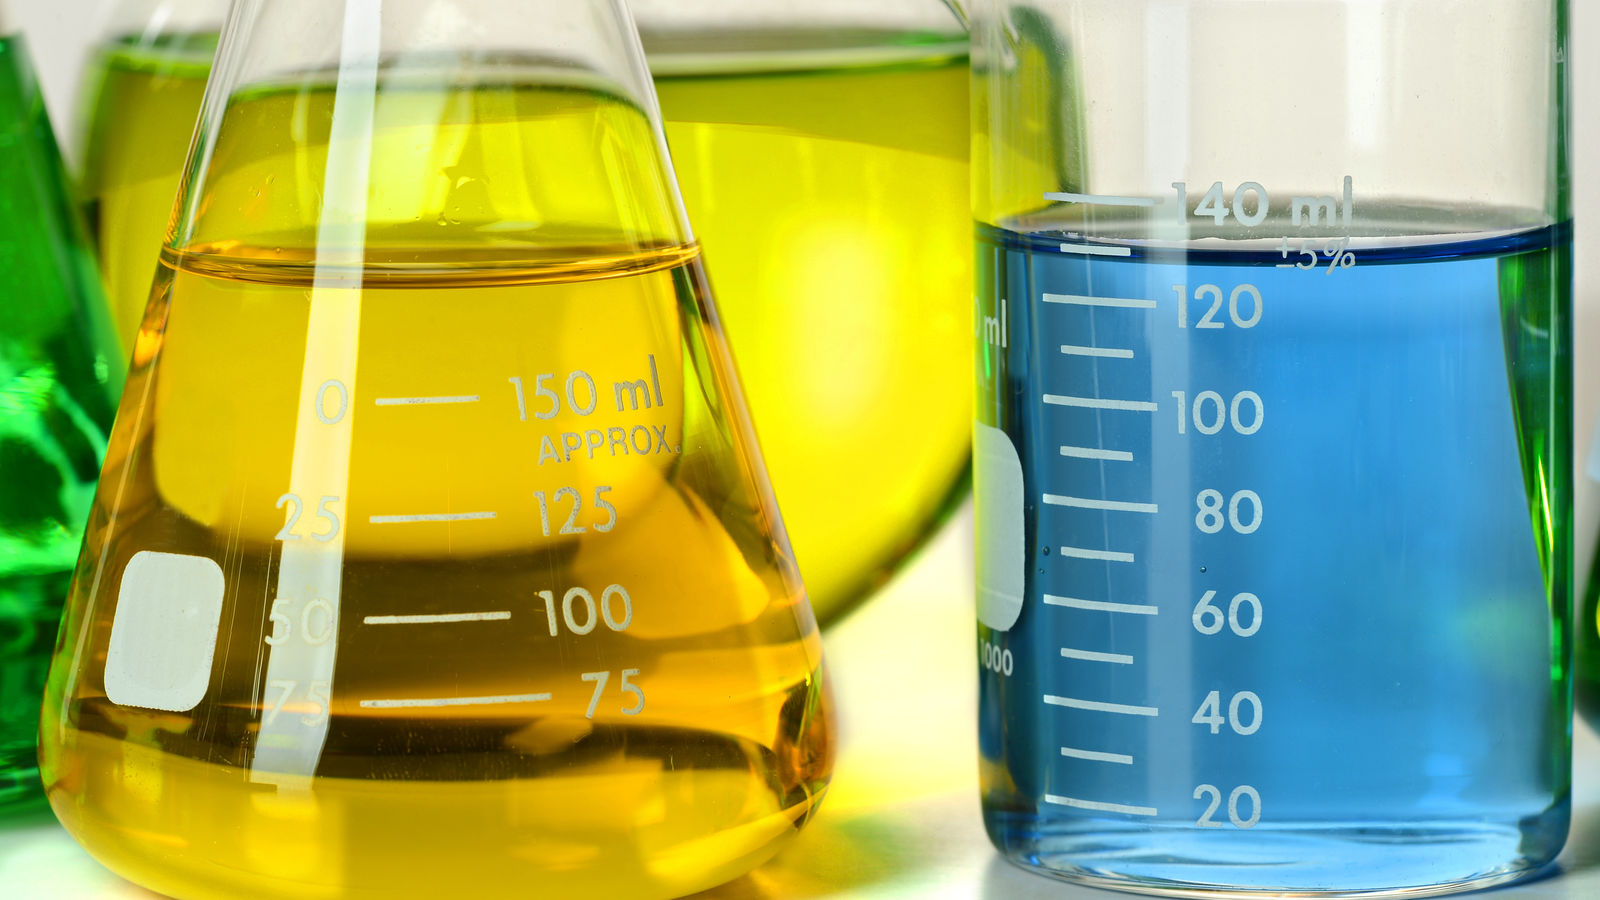 Colorful Chemicals measured in cylinders and beakers